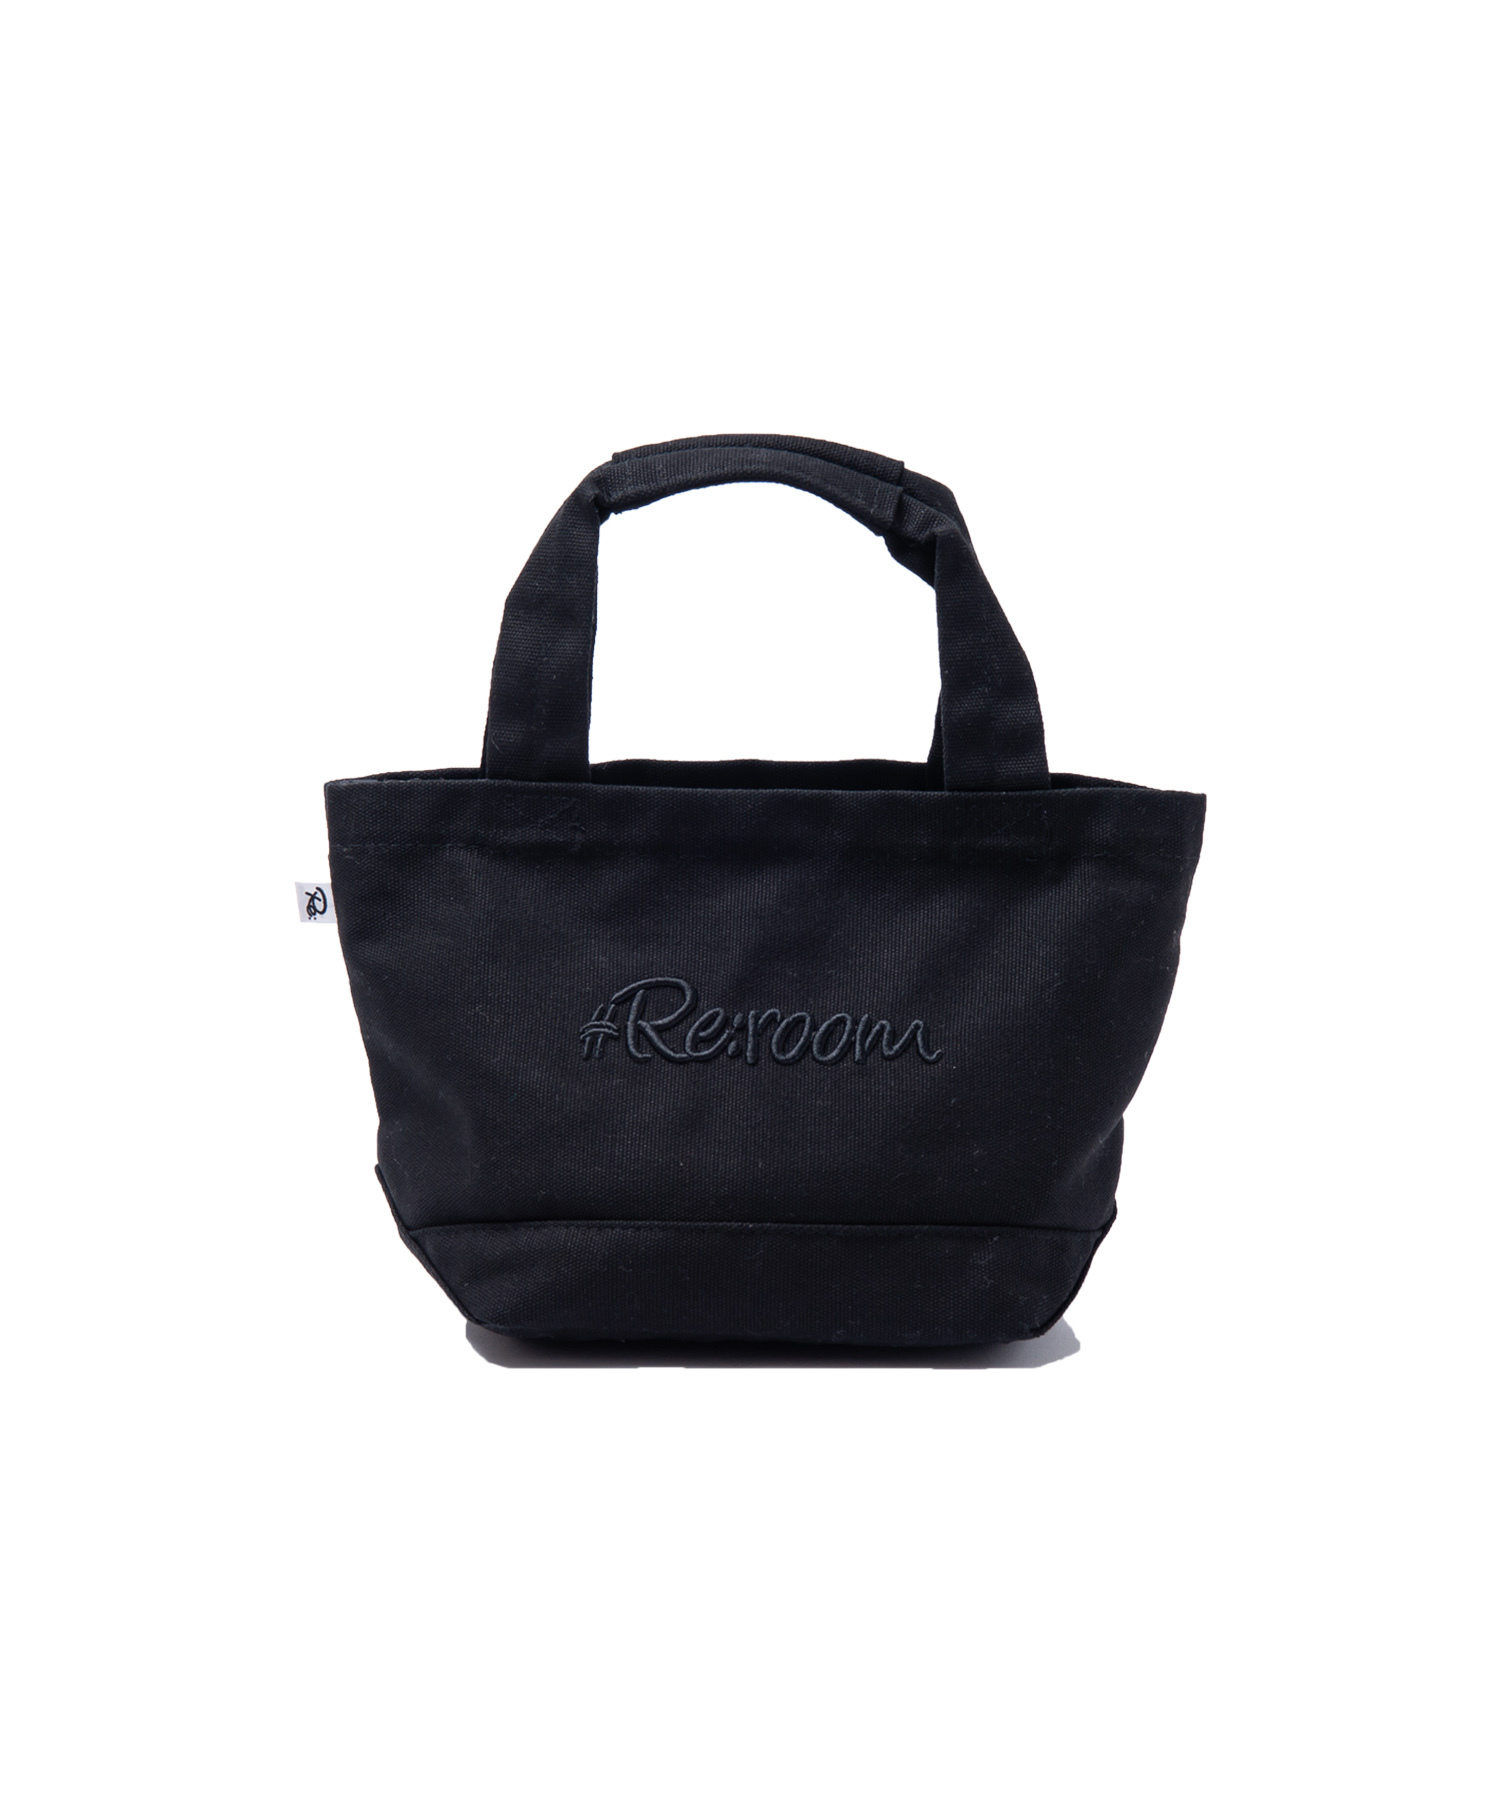 3D LOGO SMALL CANVAS TOTE BAG[REB018]